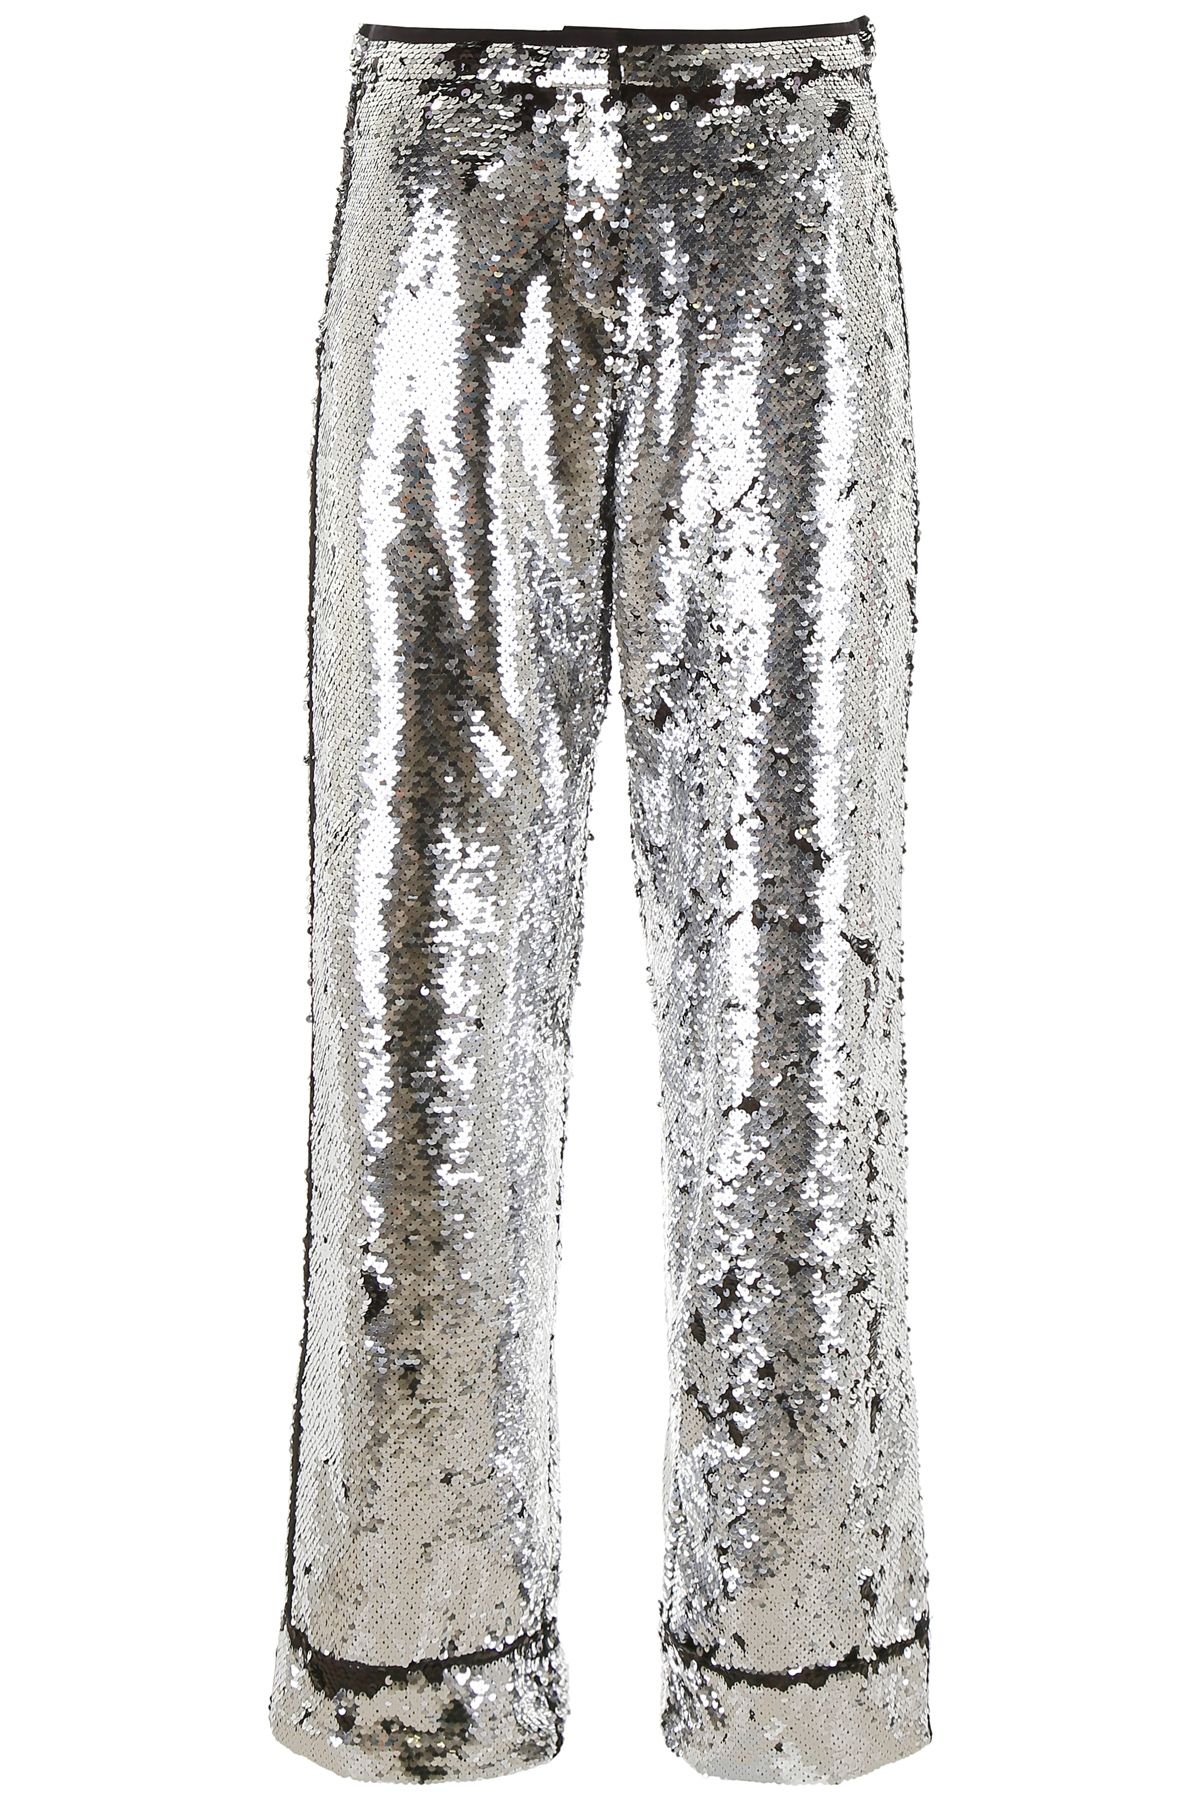 In The Mood For Love Sequins Loren Trousers